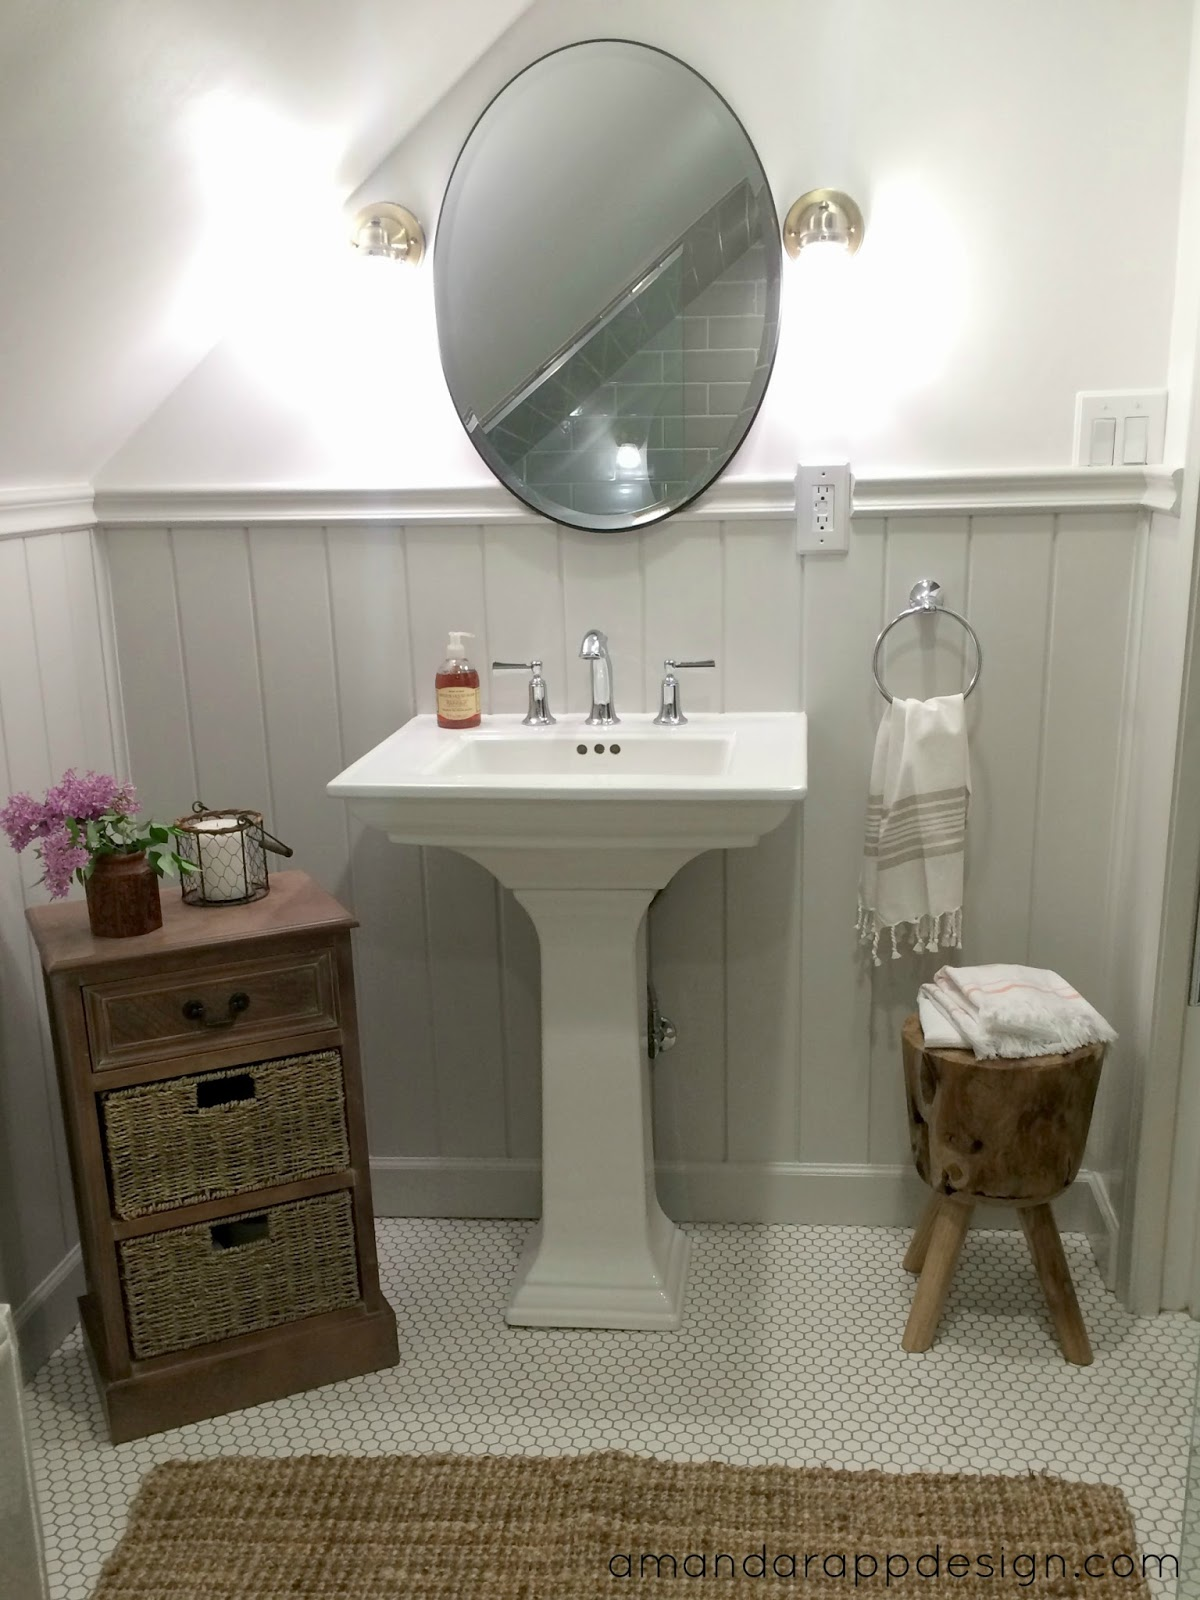 Kohler Elliston Sink : This is the finished space- we are so happy with the results! All the ...